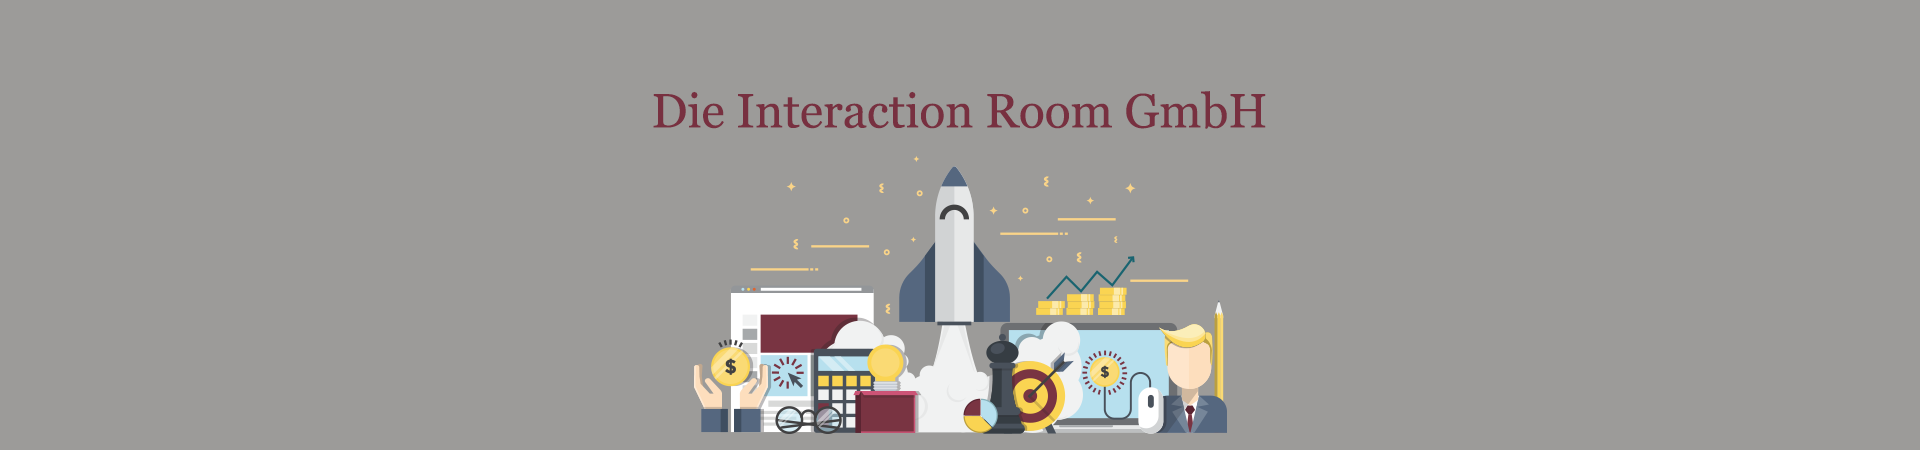 Interaction Room GmbH